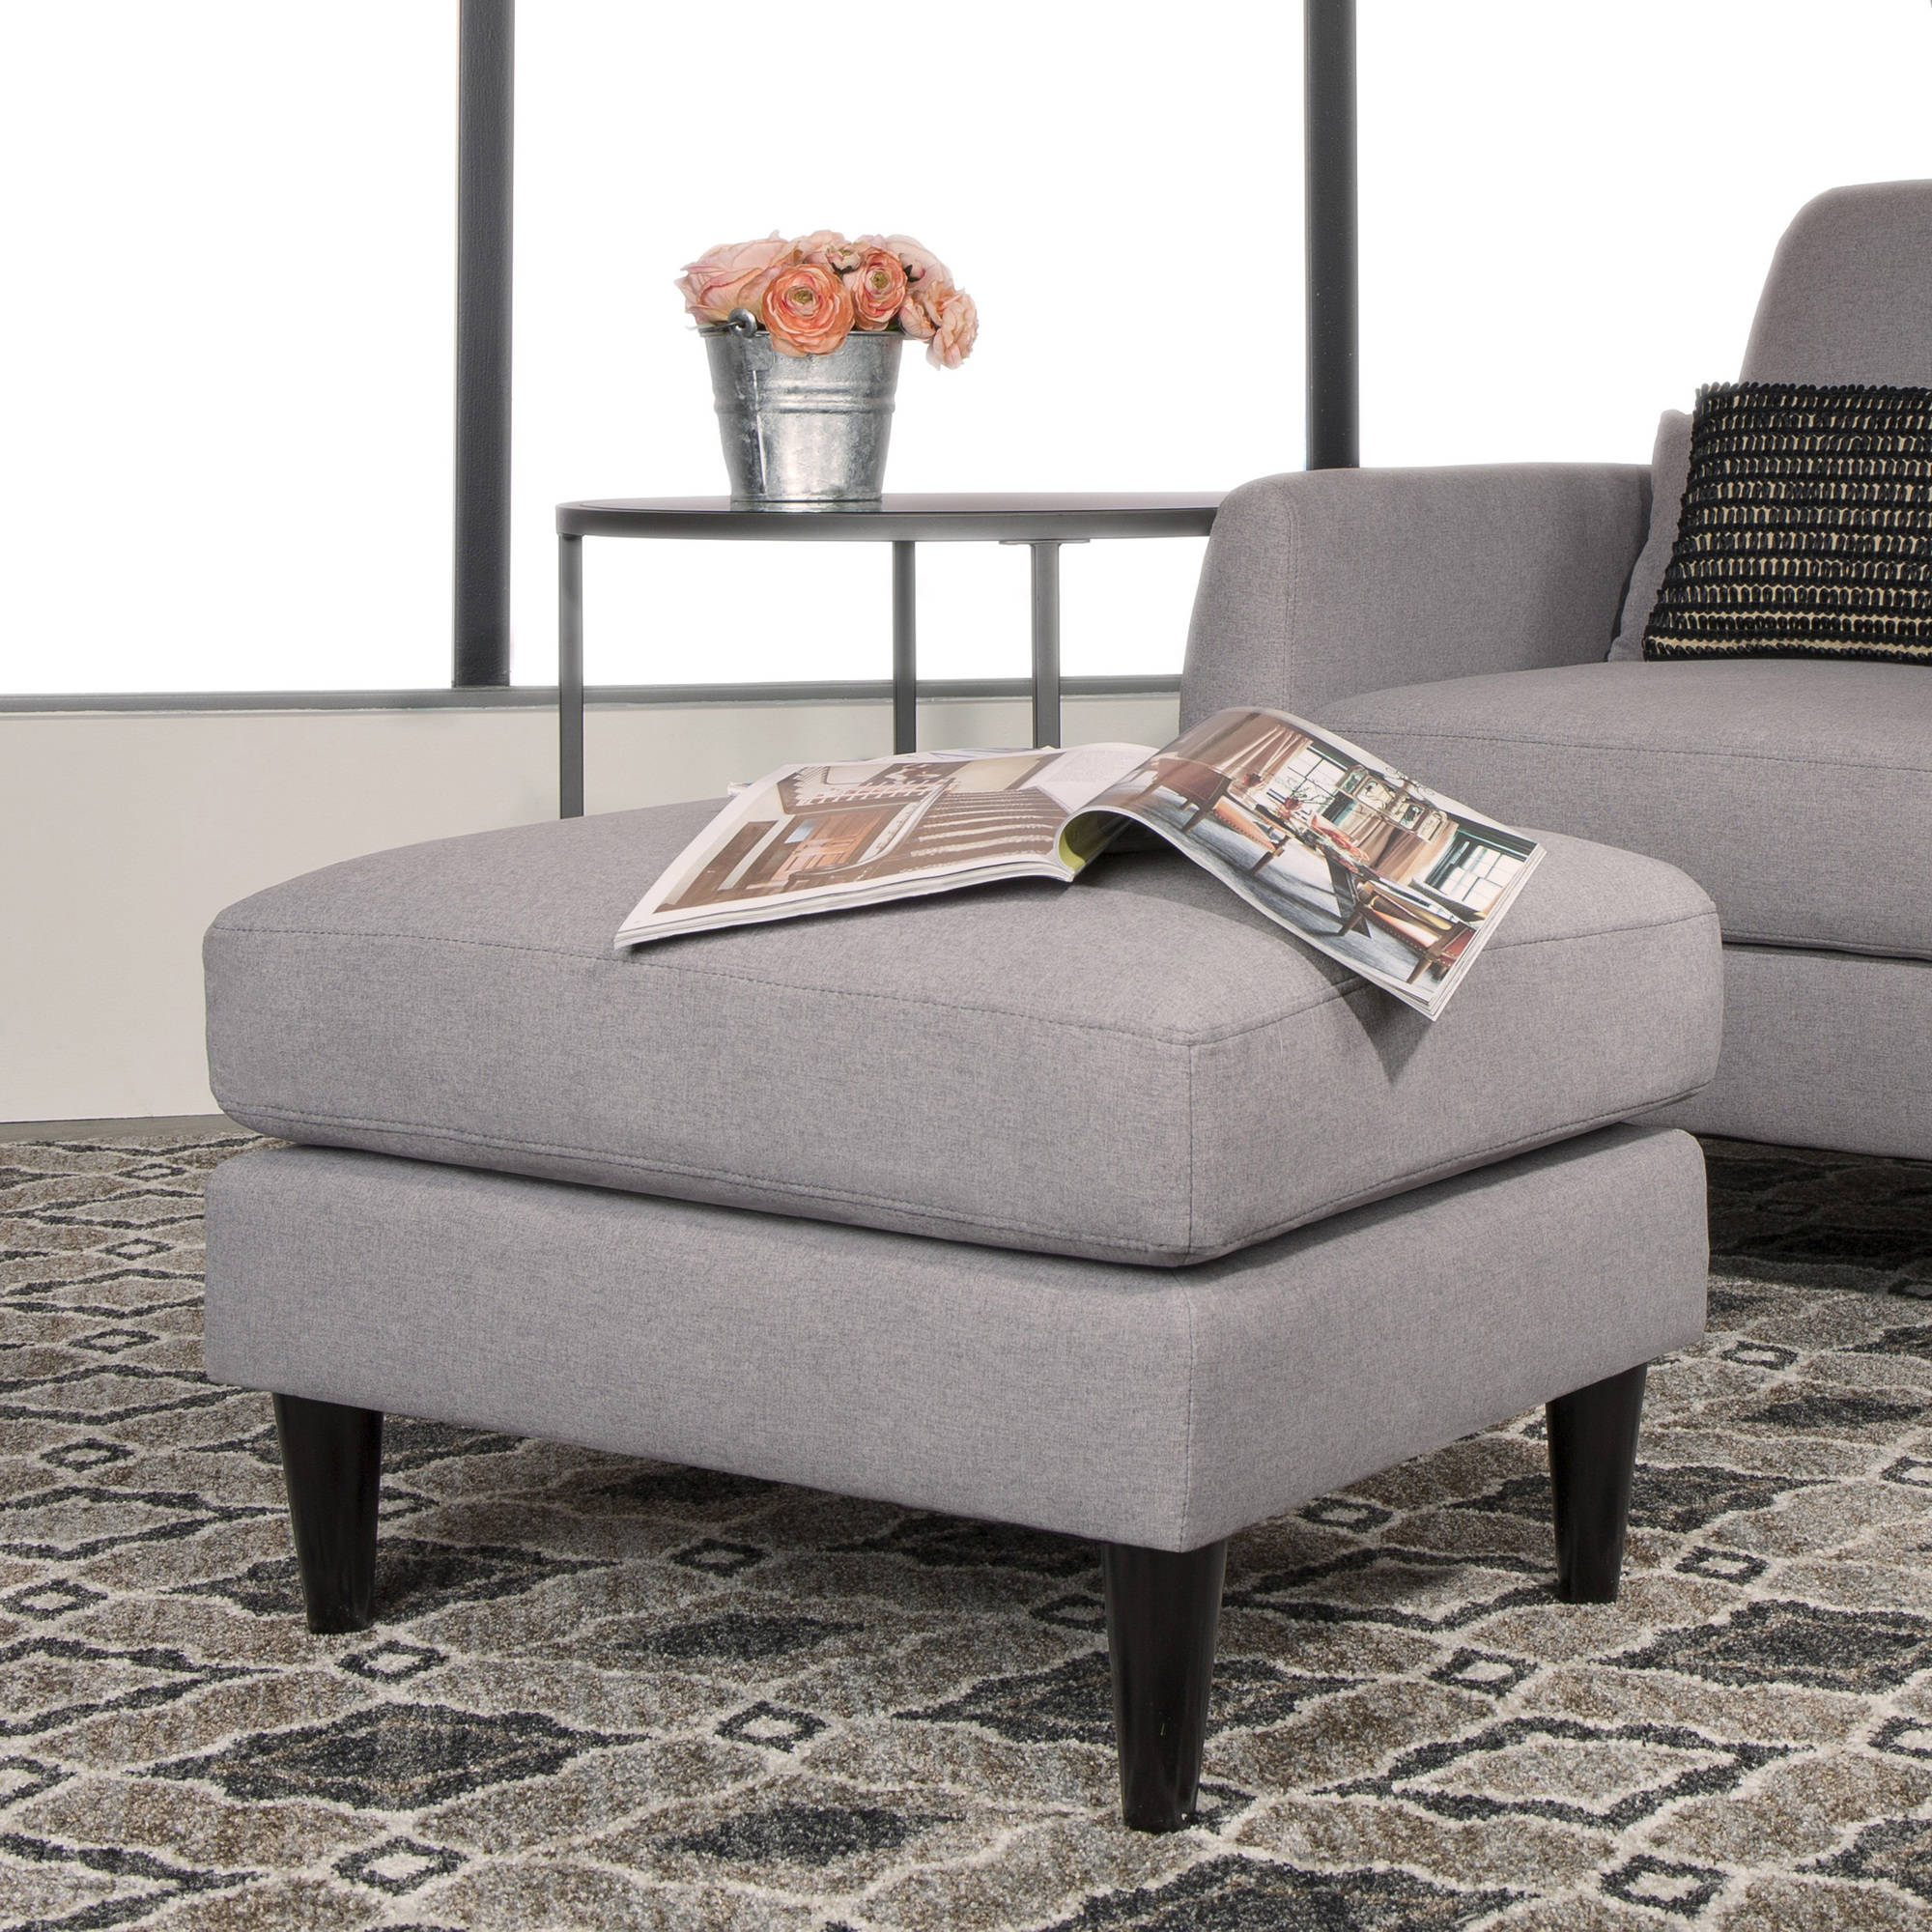 Studio Designs Home Allure Ottoman, Heather and Sand